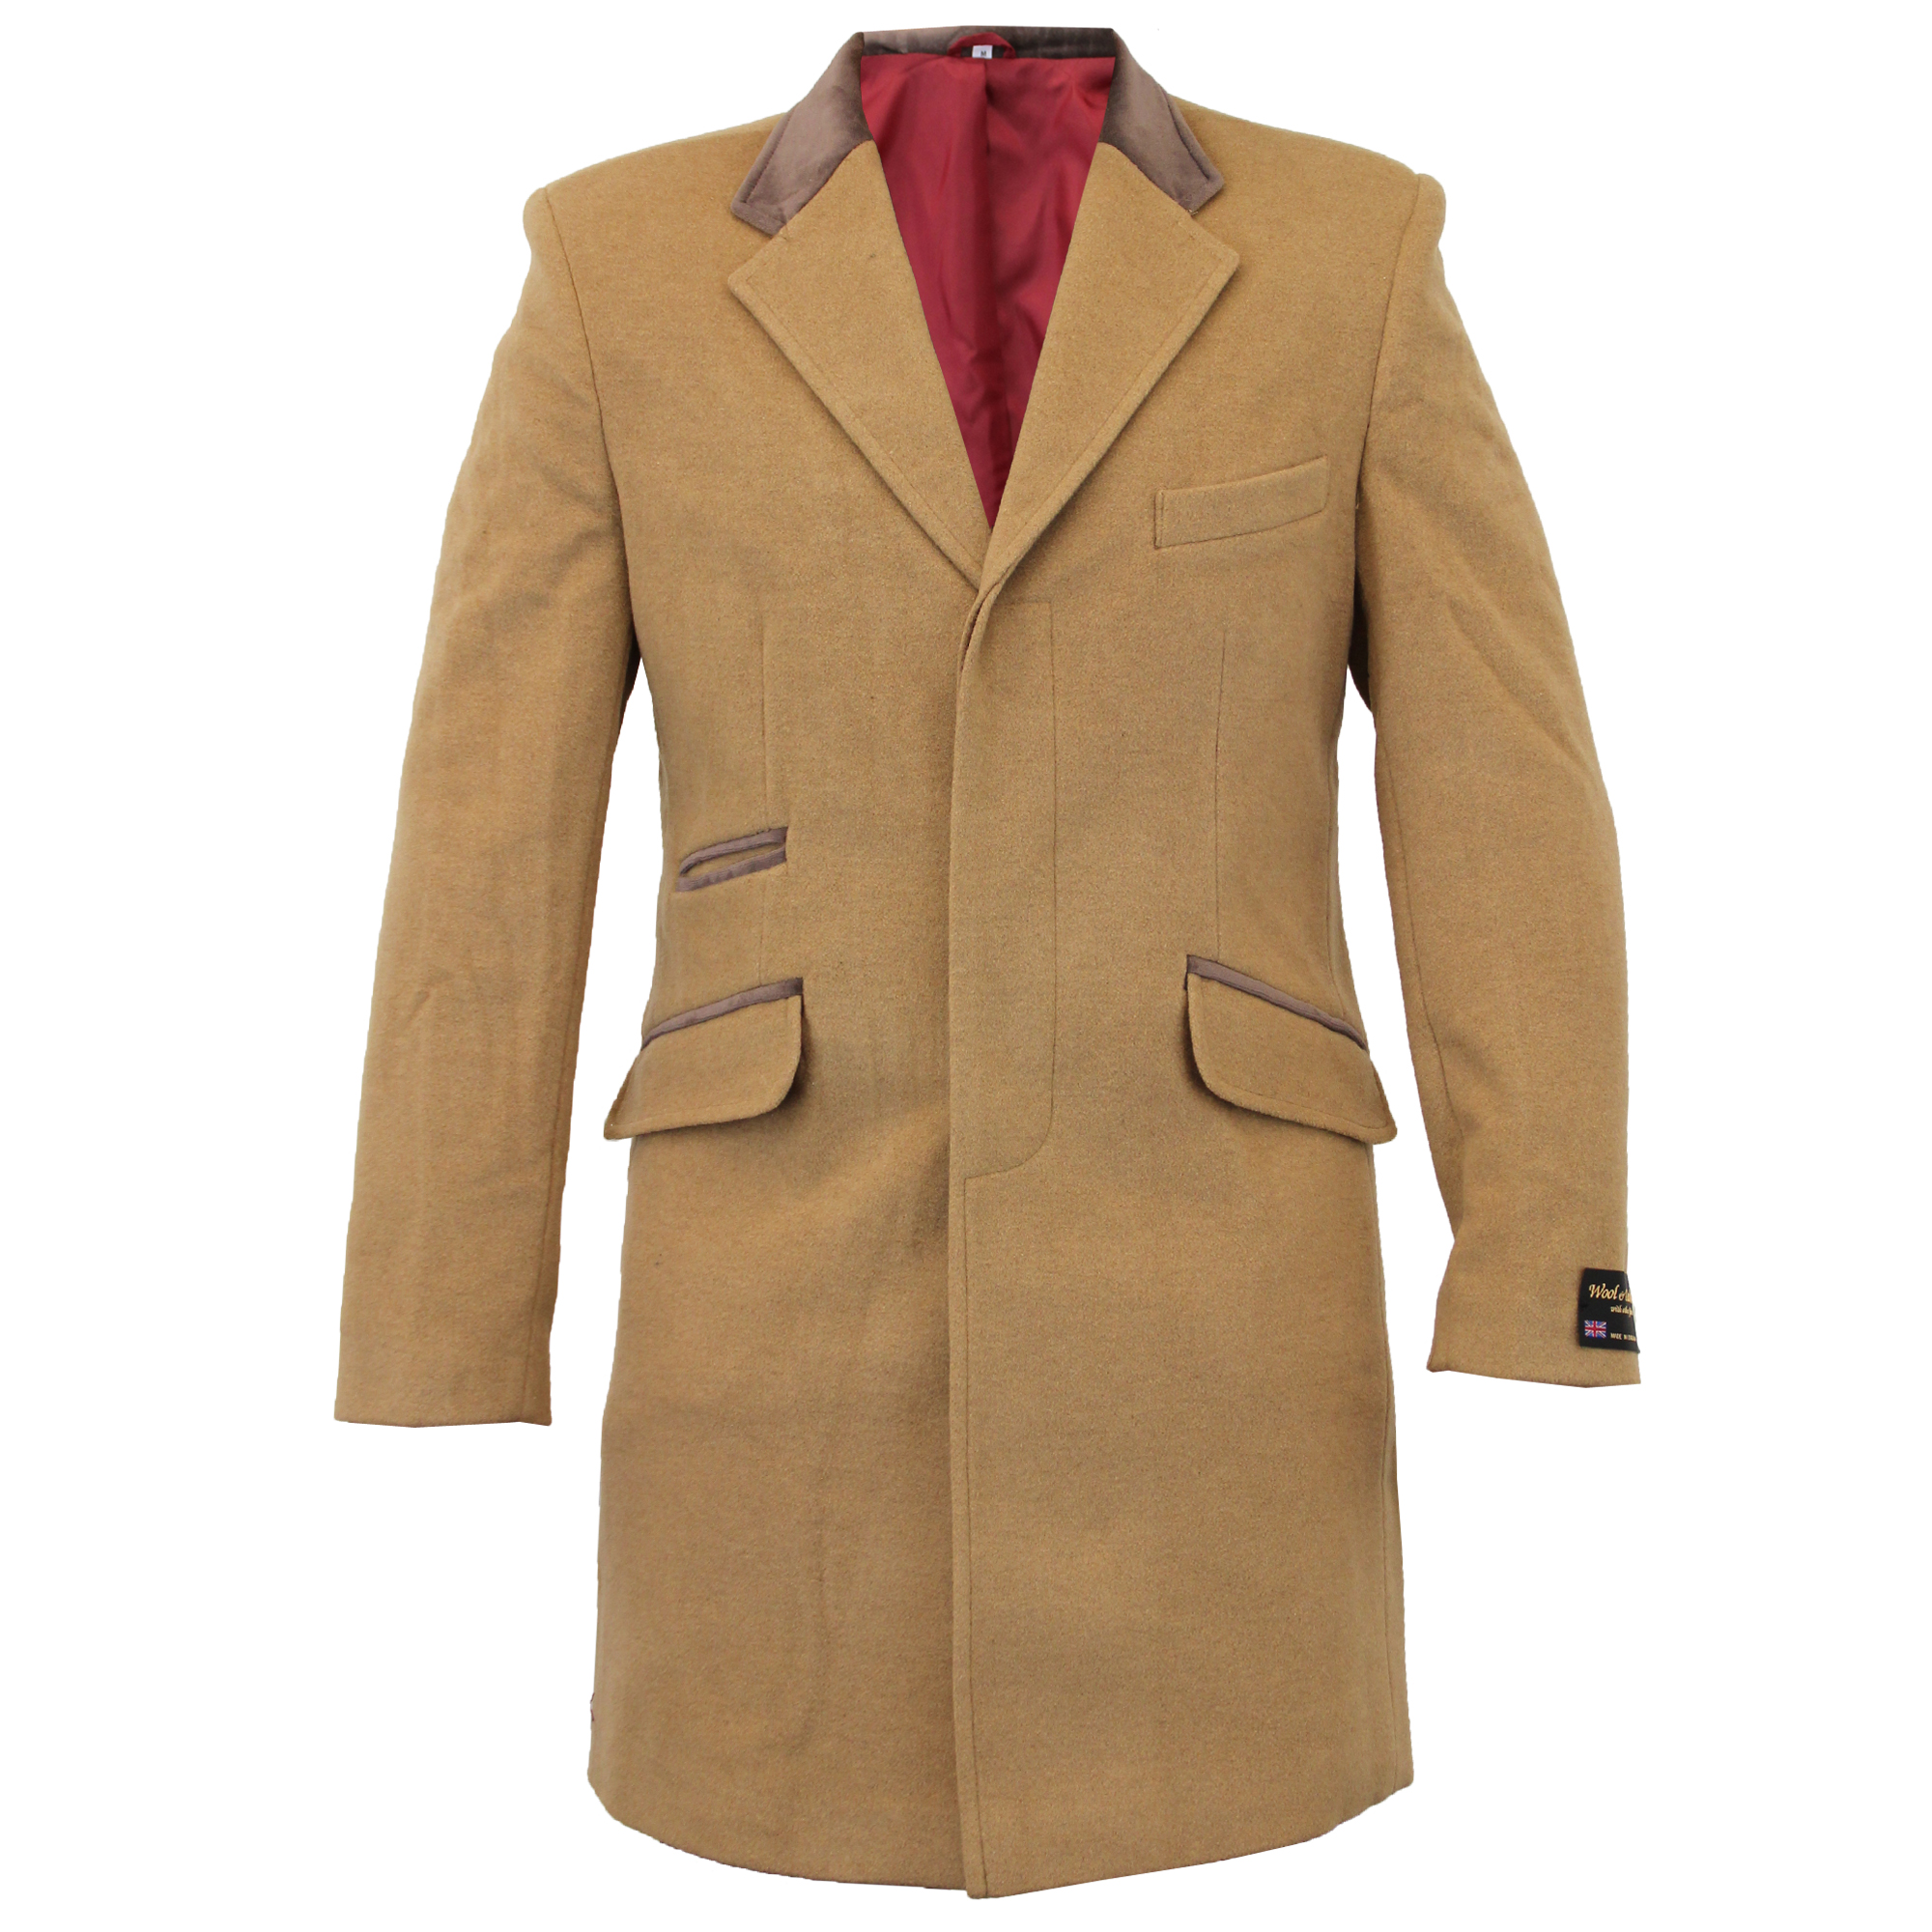 To acquire Cashmere Casual coats for women pictures trends